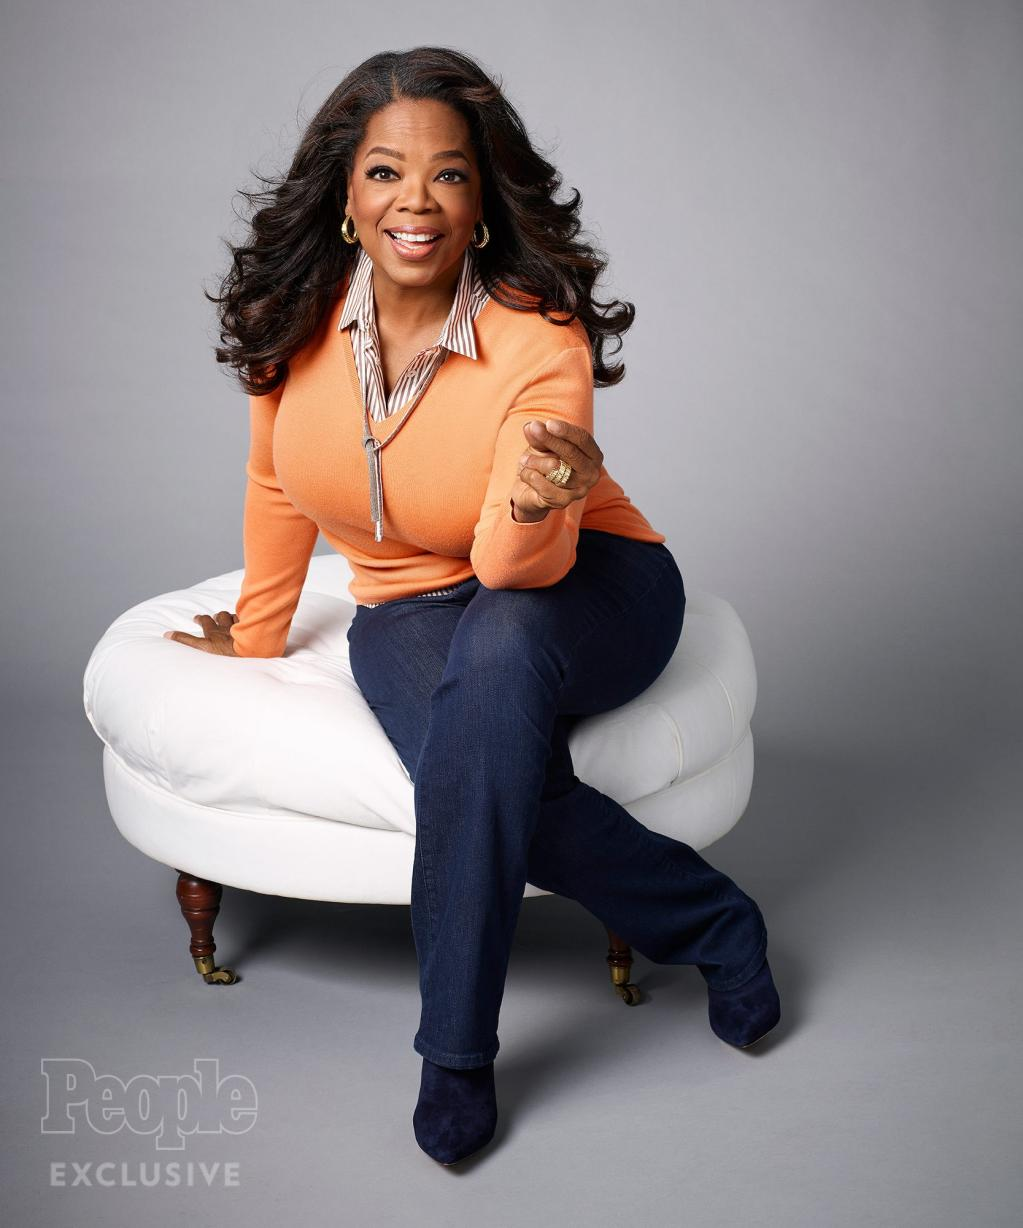 Oprah Reveals Her Emotional Lifetime Battle with Food: 'My Public Struggle with Weight Always Embarrassed Me'